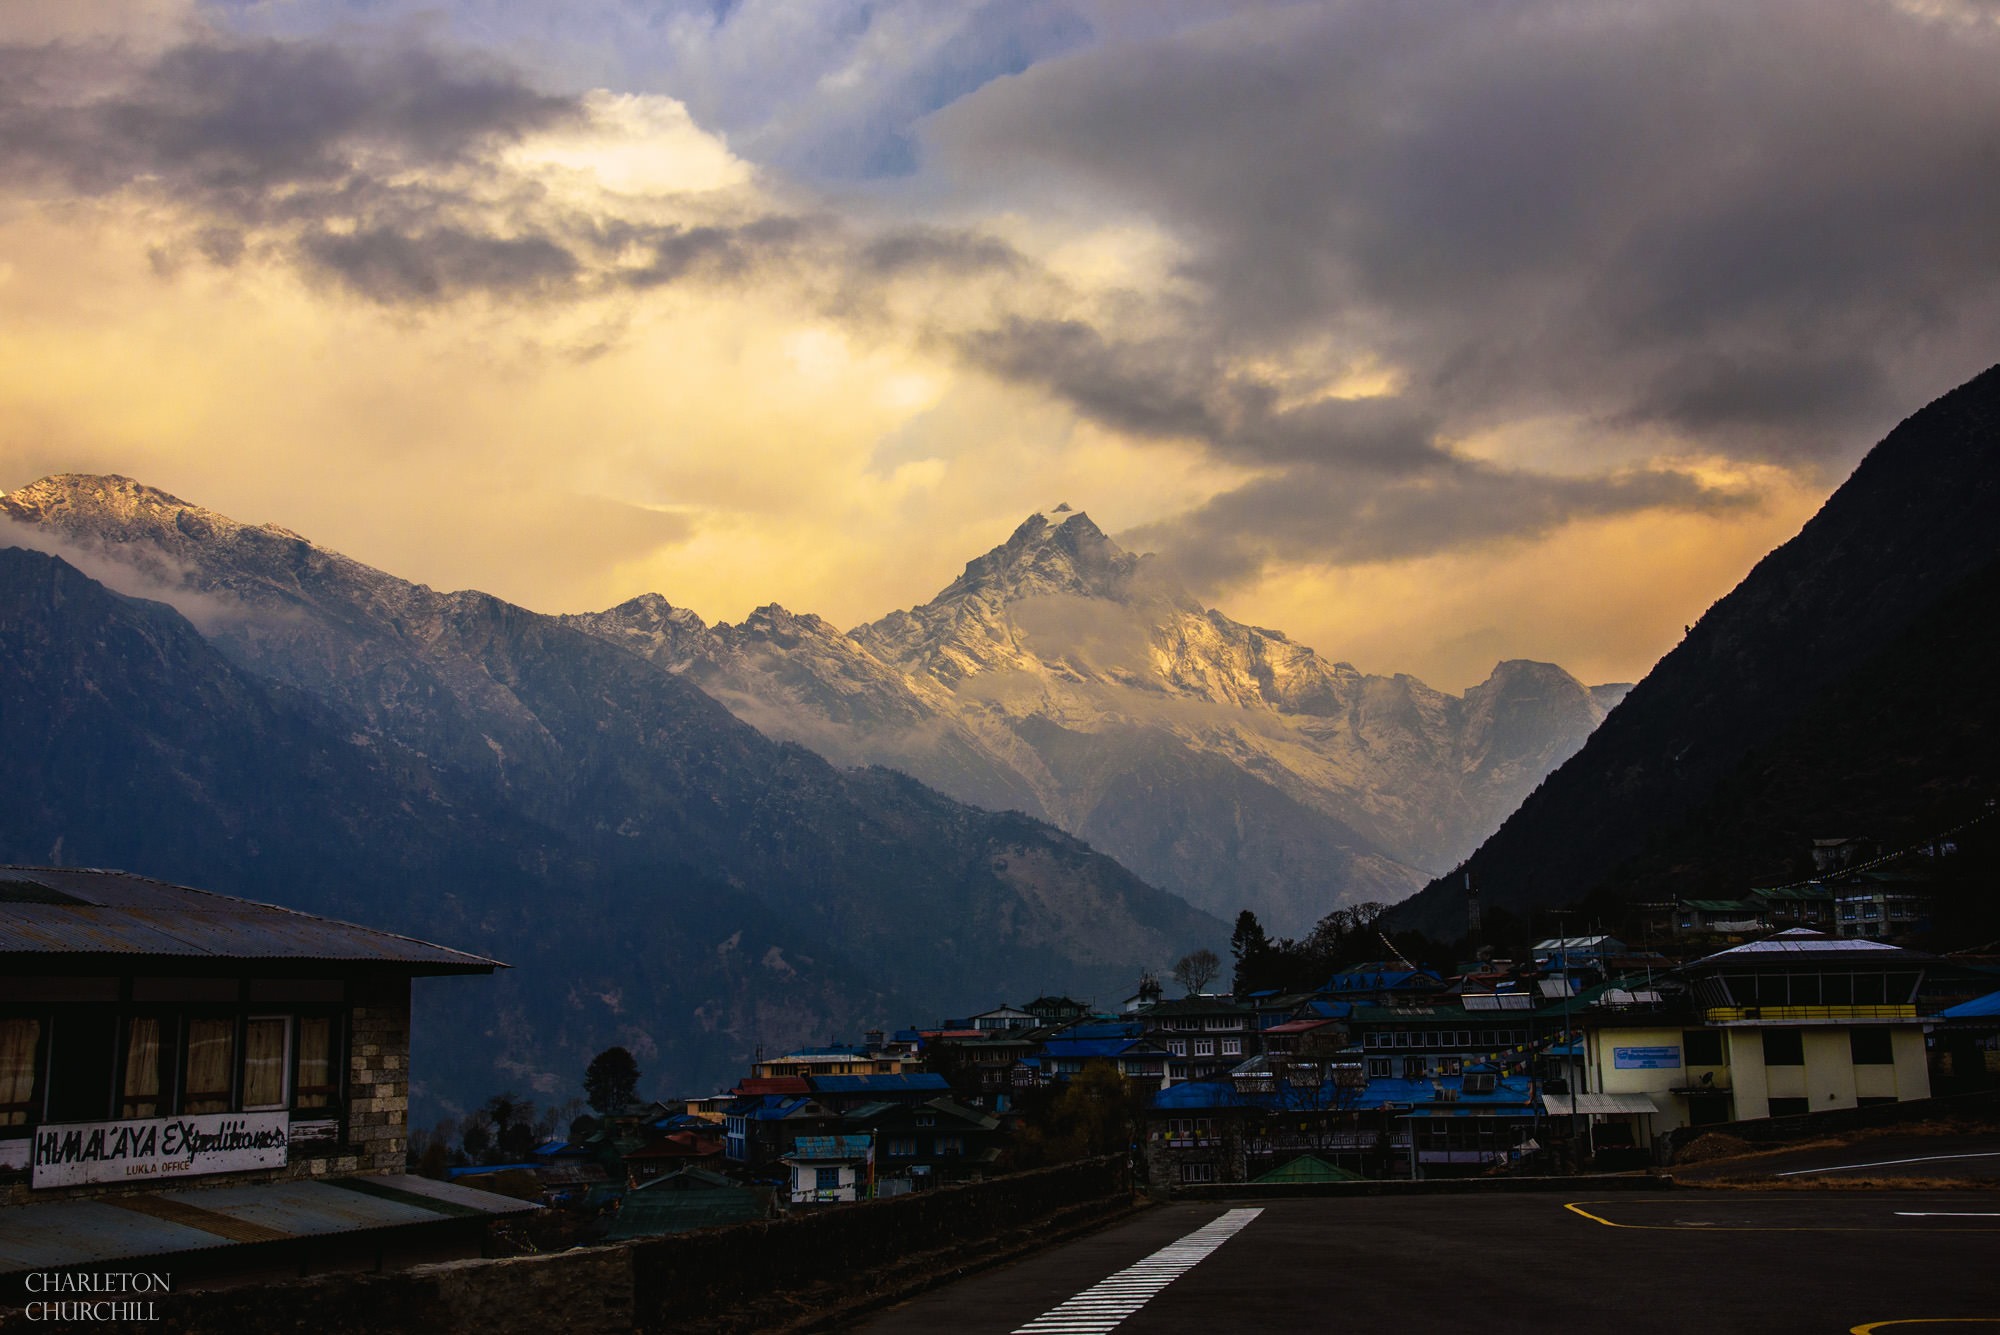 himalayas image from lukla airport